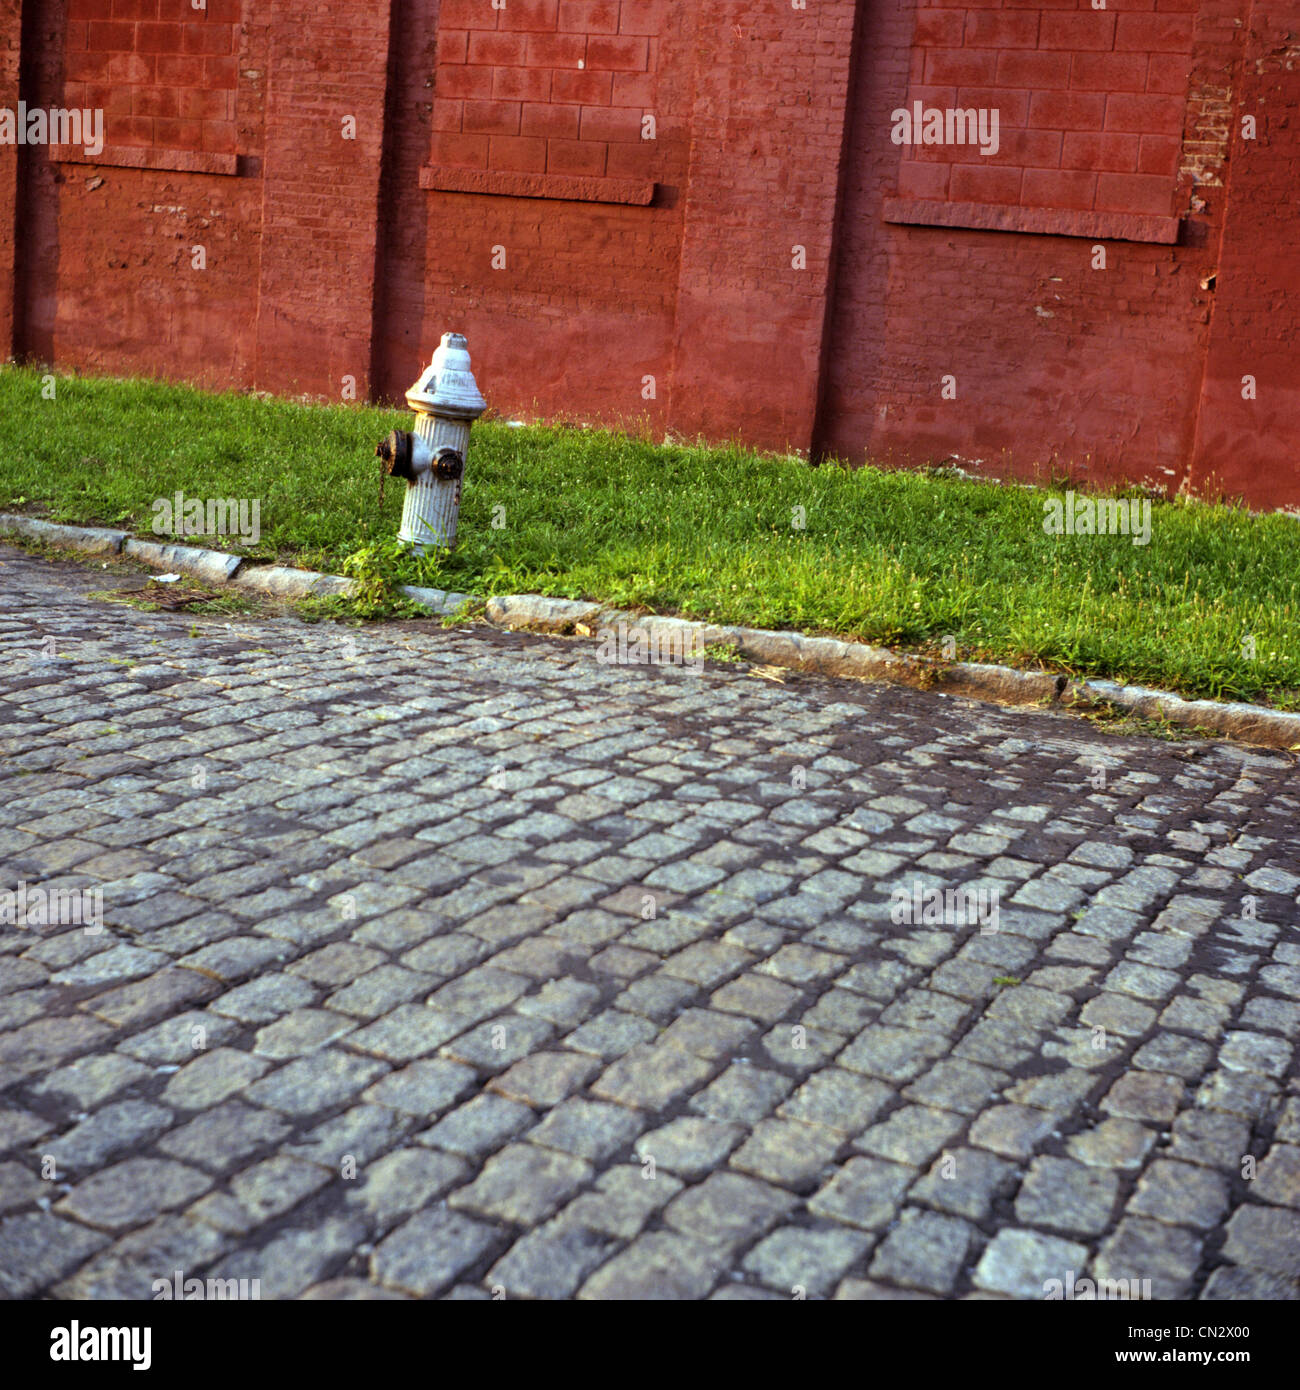 Cobbled street and fire hydrant - Stock Image